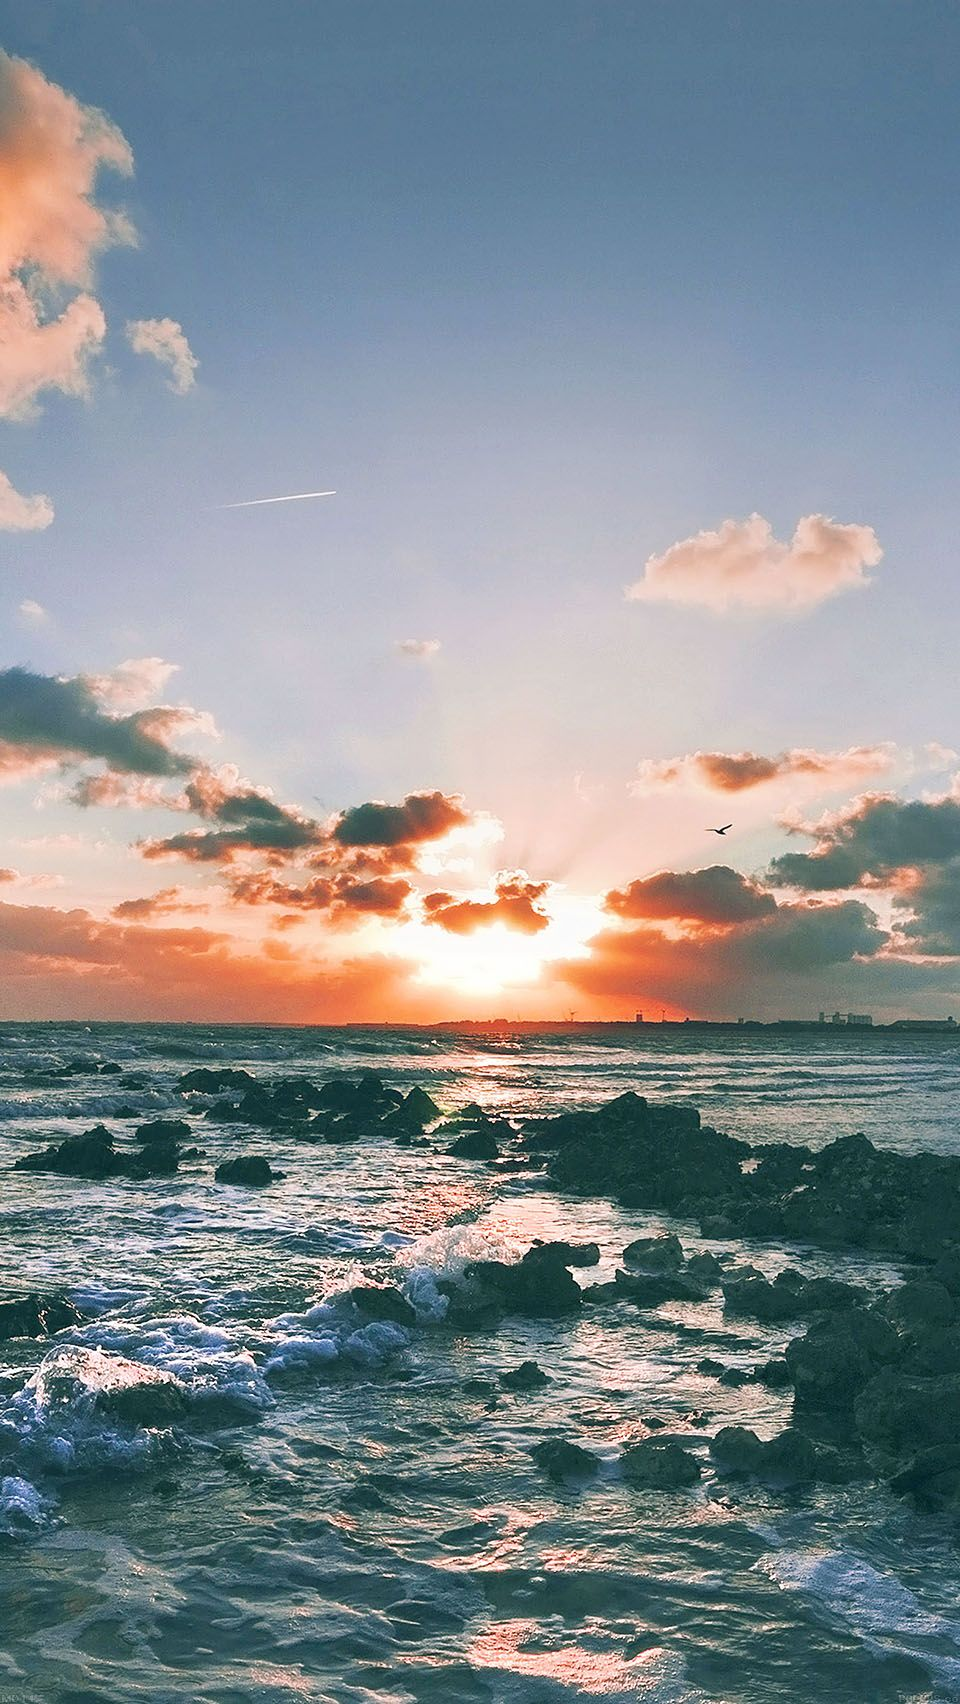 Ocean And Sunset Wallpaper For Iphone 6 Wallpaper Iphone